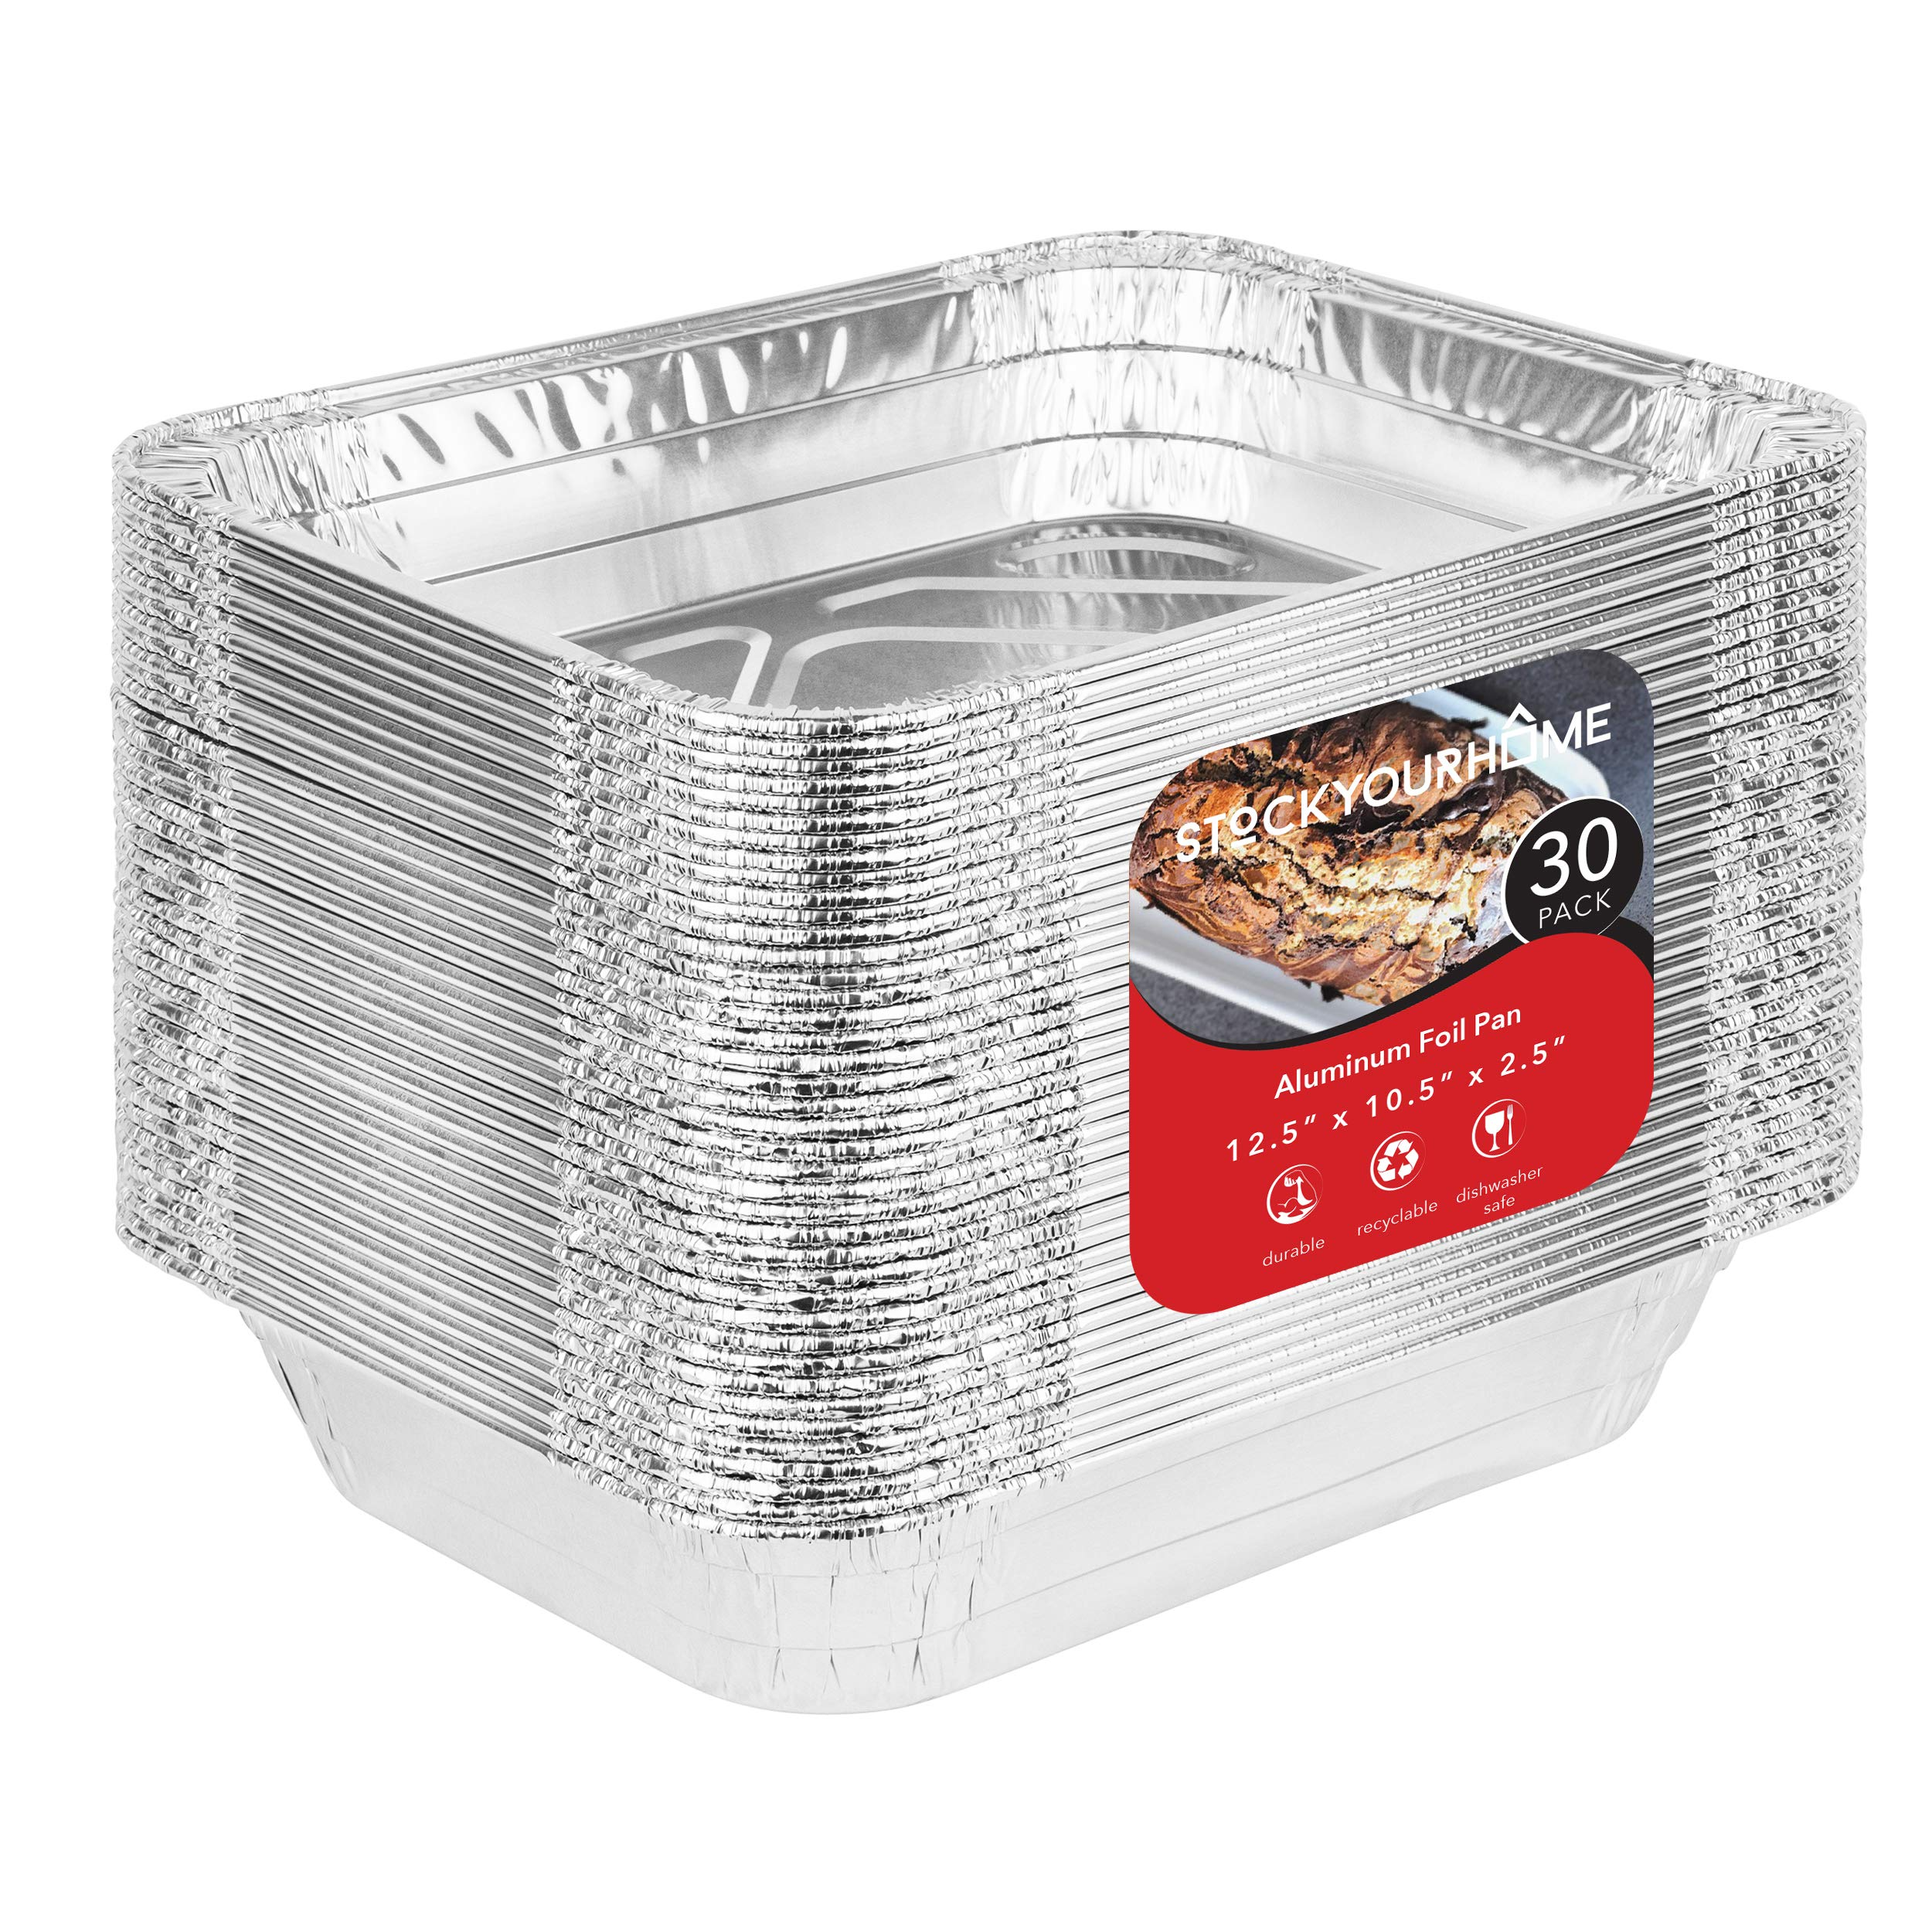 9x13 Disposable Aluminum Foil Baking Pans (30 Pack) - Half Size Steam Table Deep Pans - Tin Foil Pans Great for Cooking, Heating, Storing, Prepping Food